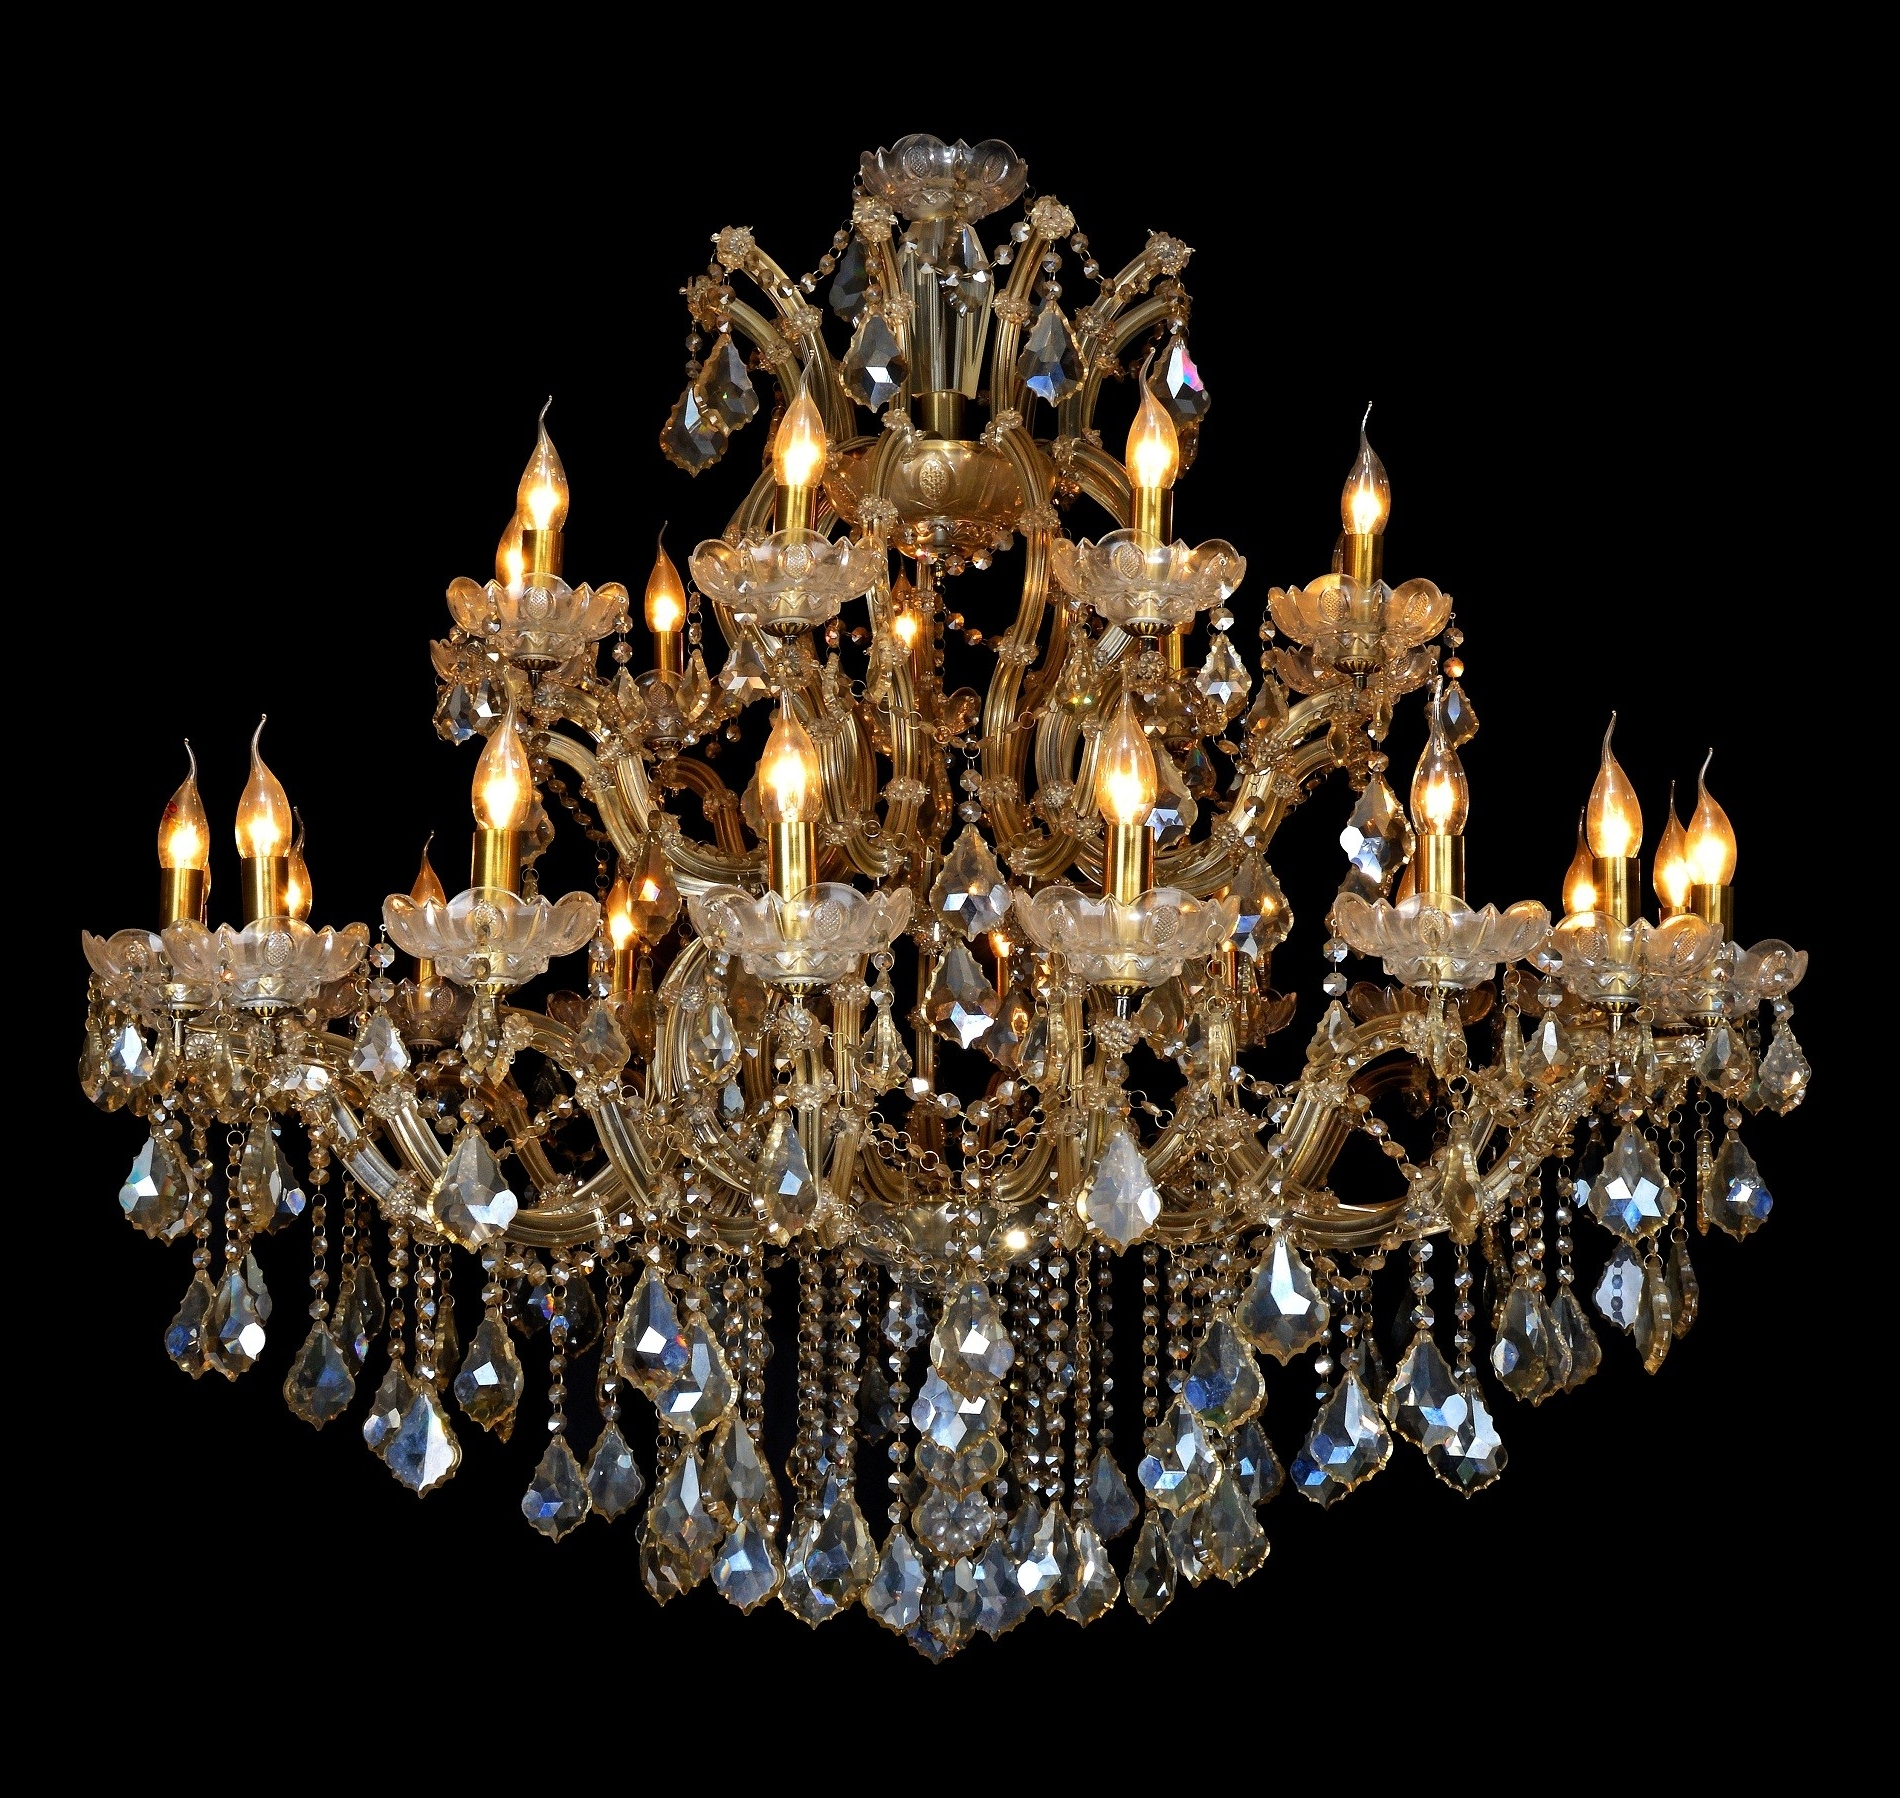 Queen Royal Victoria Of Uk, 27L, 2 Tiers Extra Large Over Size K9 Intended For Most Recently Released Extra Large Crystal Chandeliers (Gallery 10 of 15)